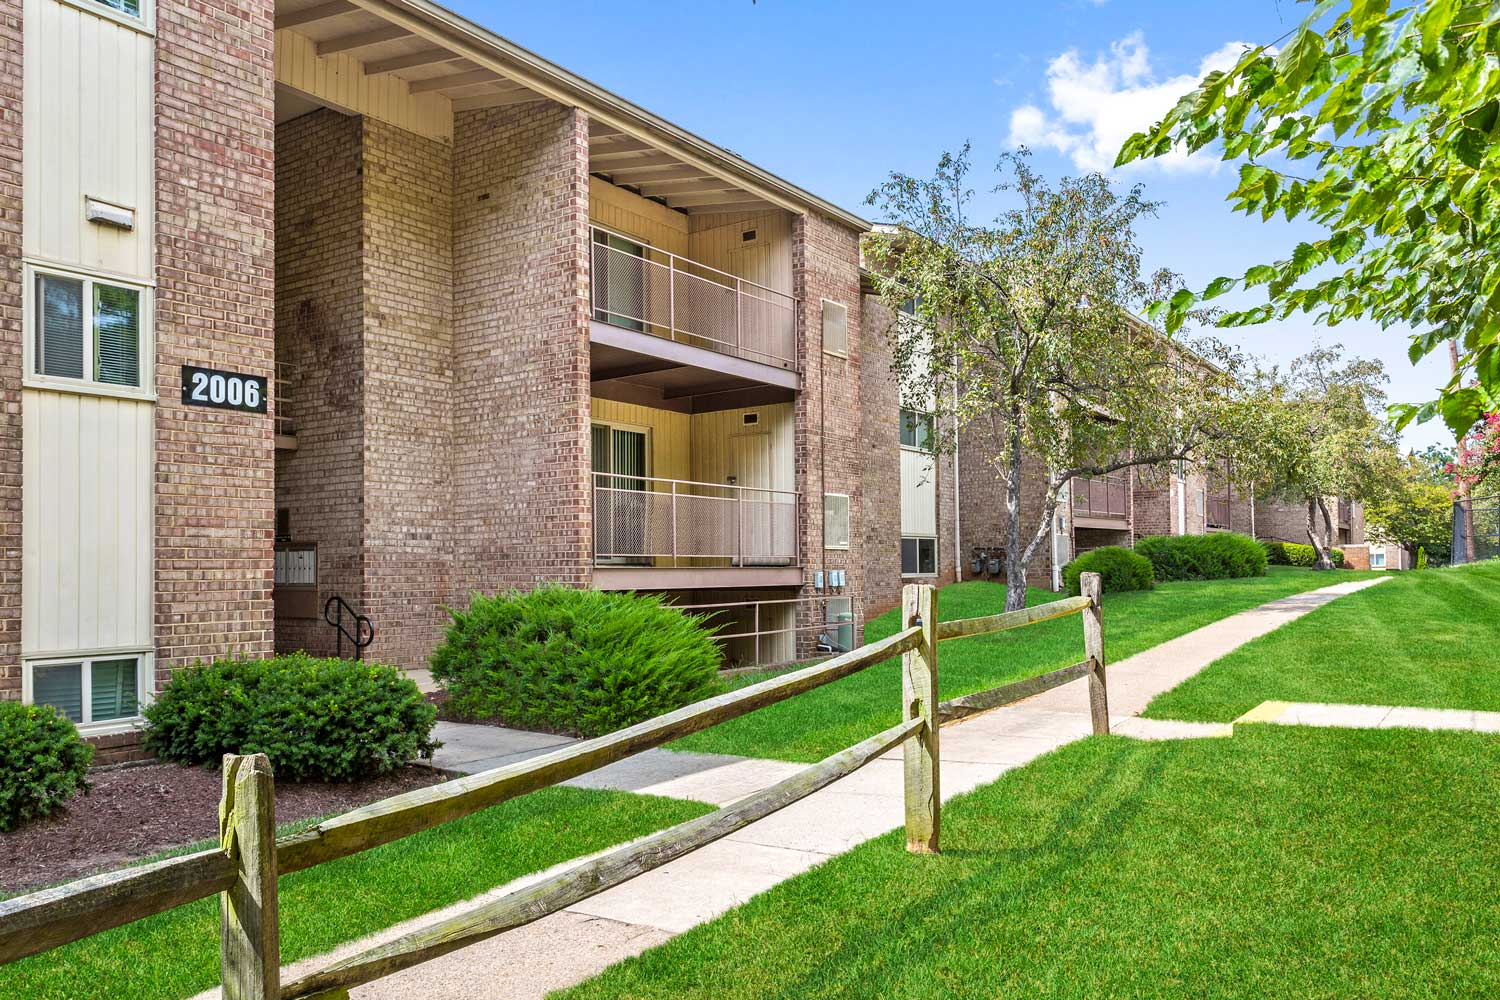 1, 2 and 3-bedroom apartments at Columbia Park Apartments in Landover, MD